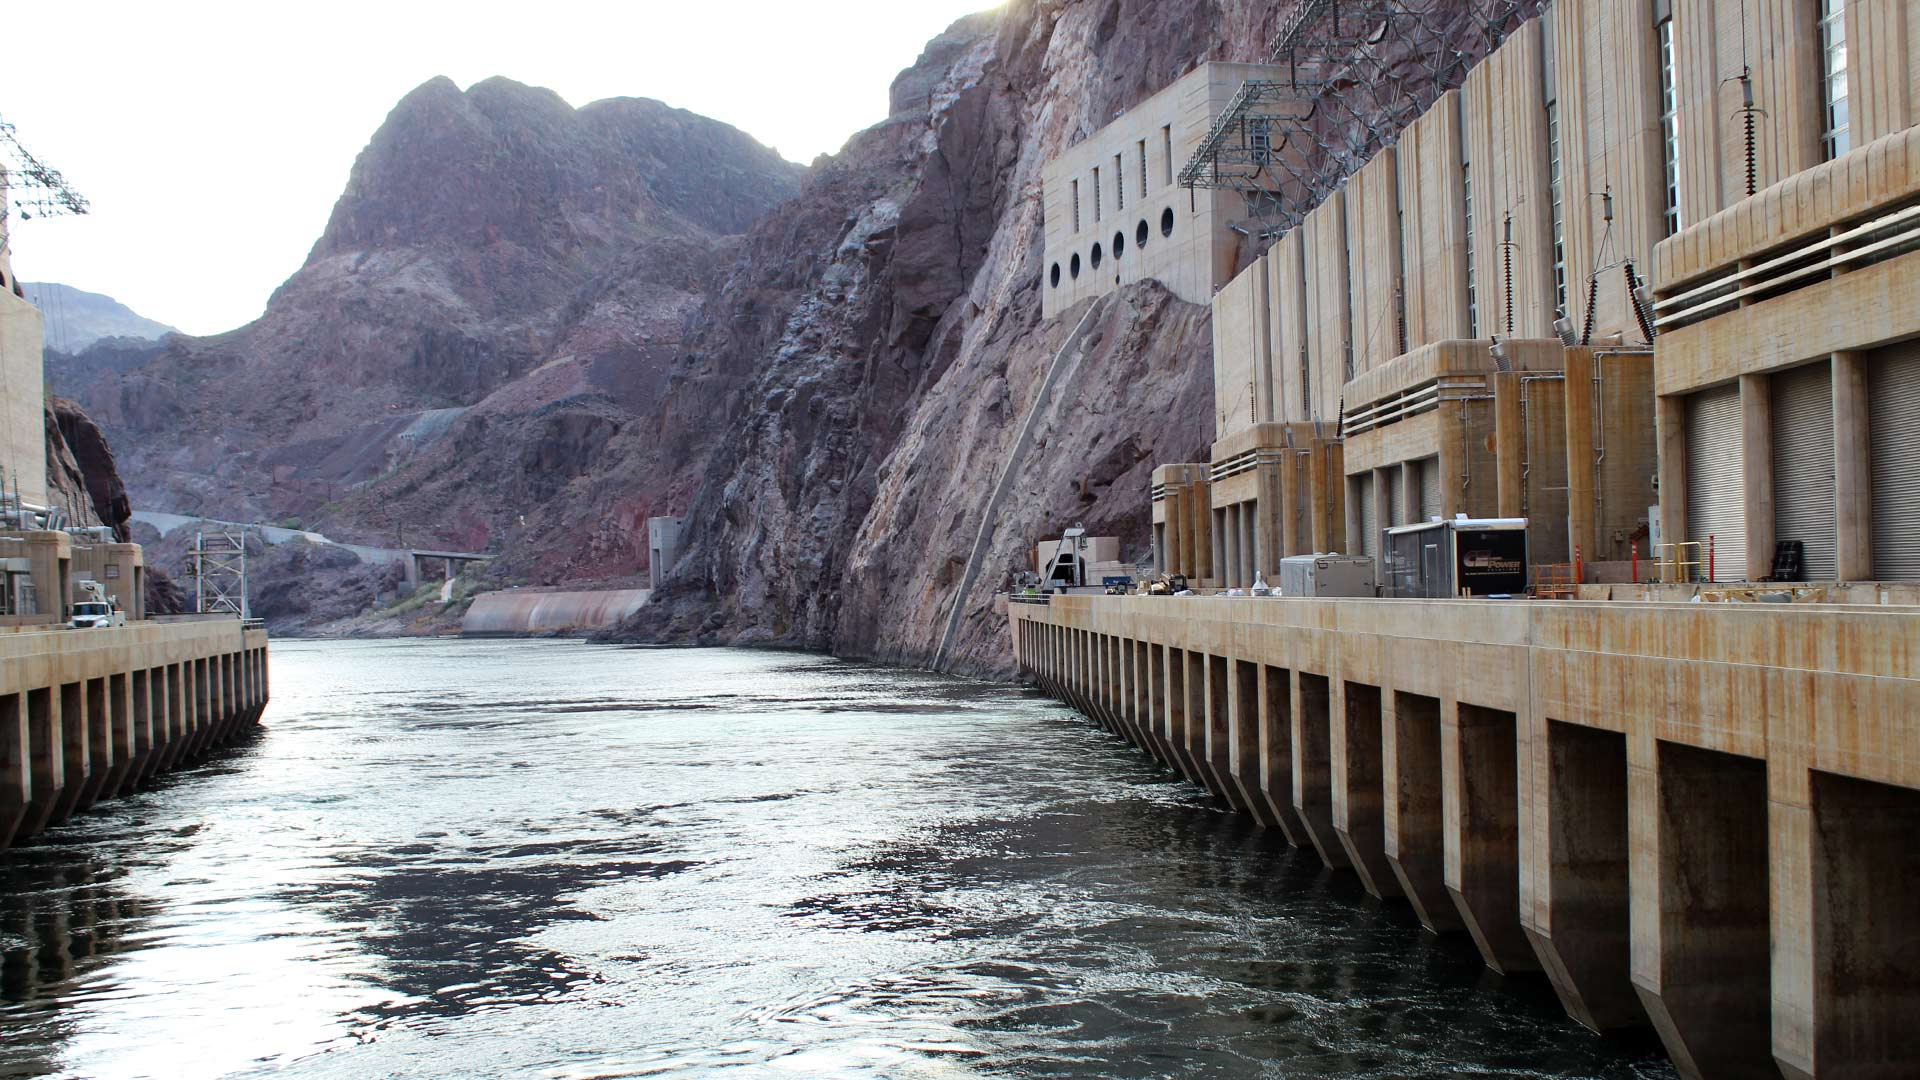 Water released from Lake Mead through Hoover Dam